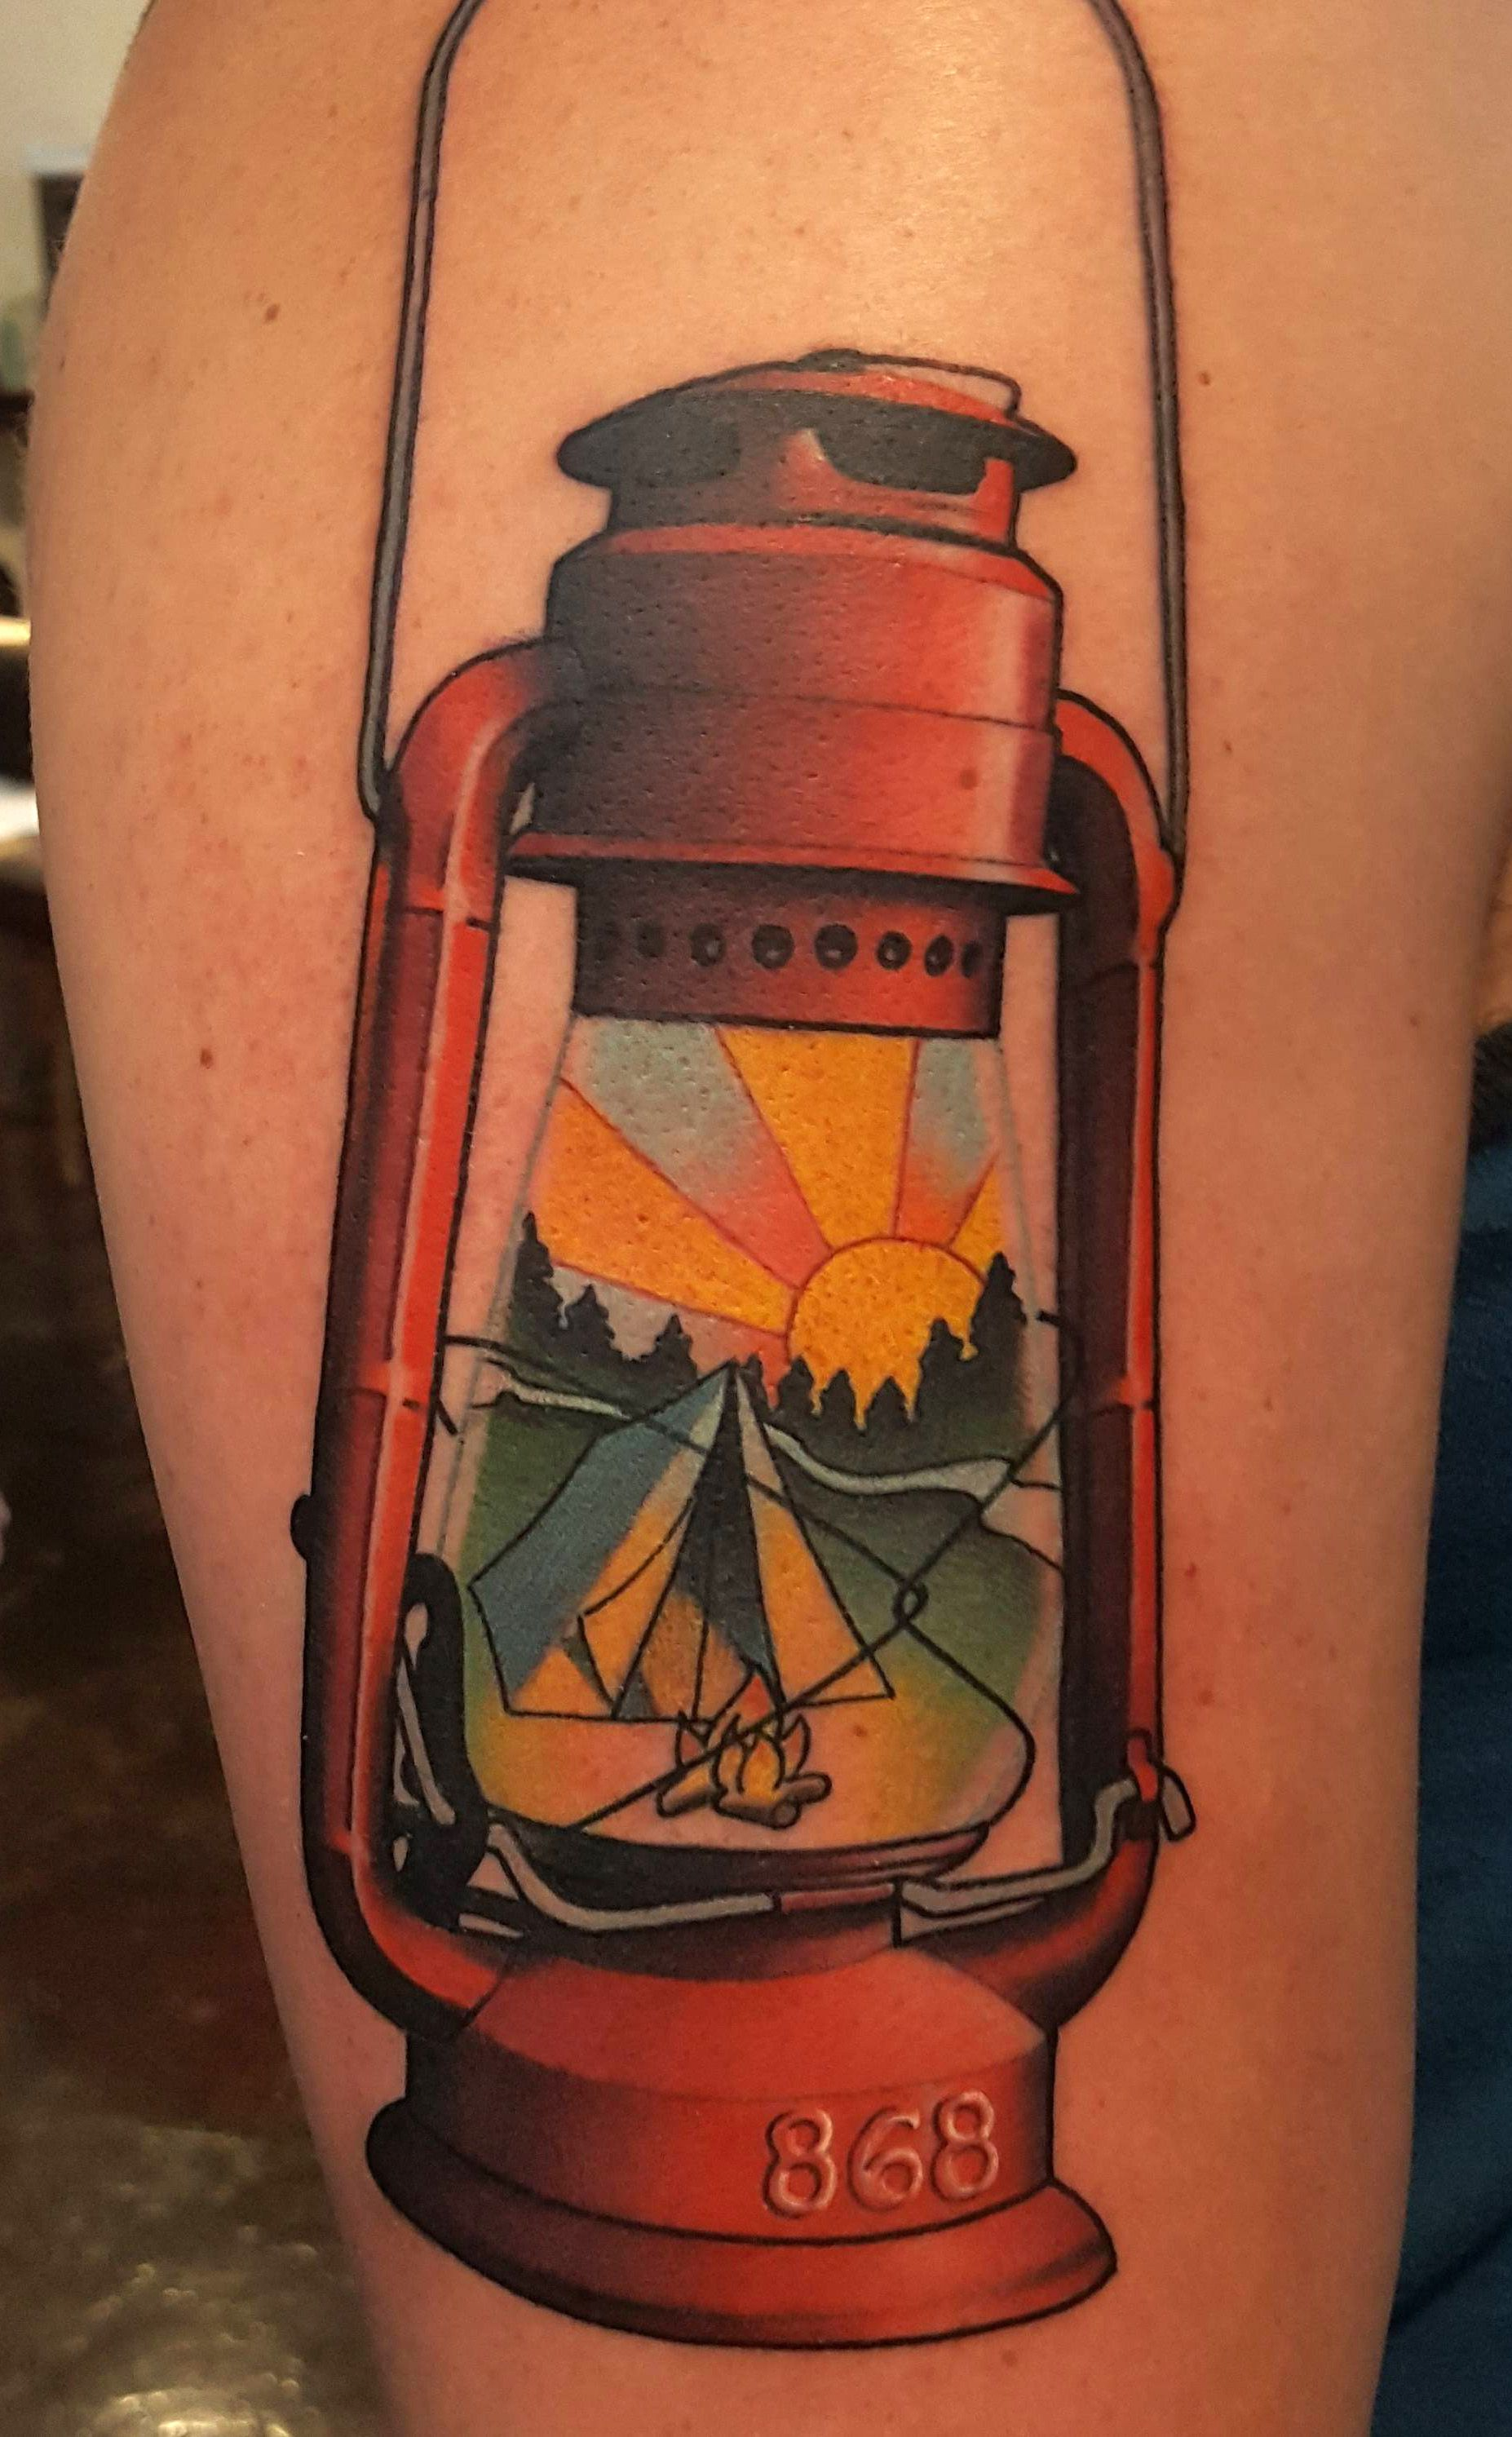 Camping Lantern Tattoo By Brad Dozier At Black 13 In Nashville Tn Lantern Tattoo Camping Tattoo Outdoor Tattoo